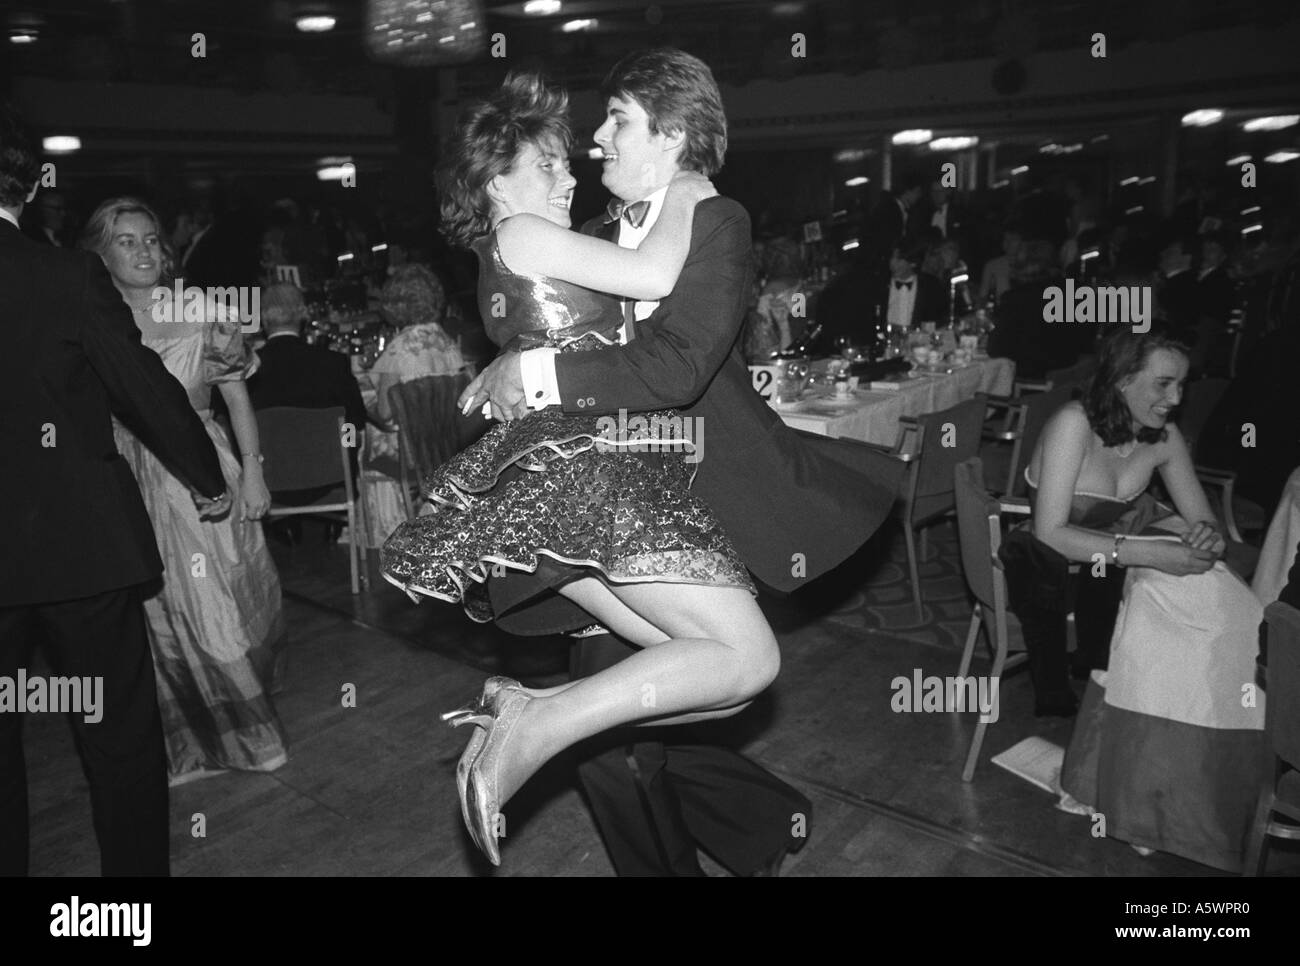 Sloan Ranger types at the annual Rose Ball Grosvenor House  Hotel London England 1982 1980S HOMER SYKES - Stock Image